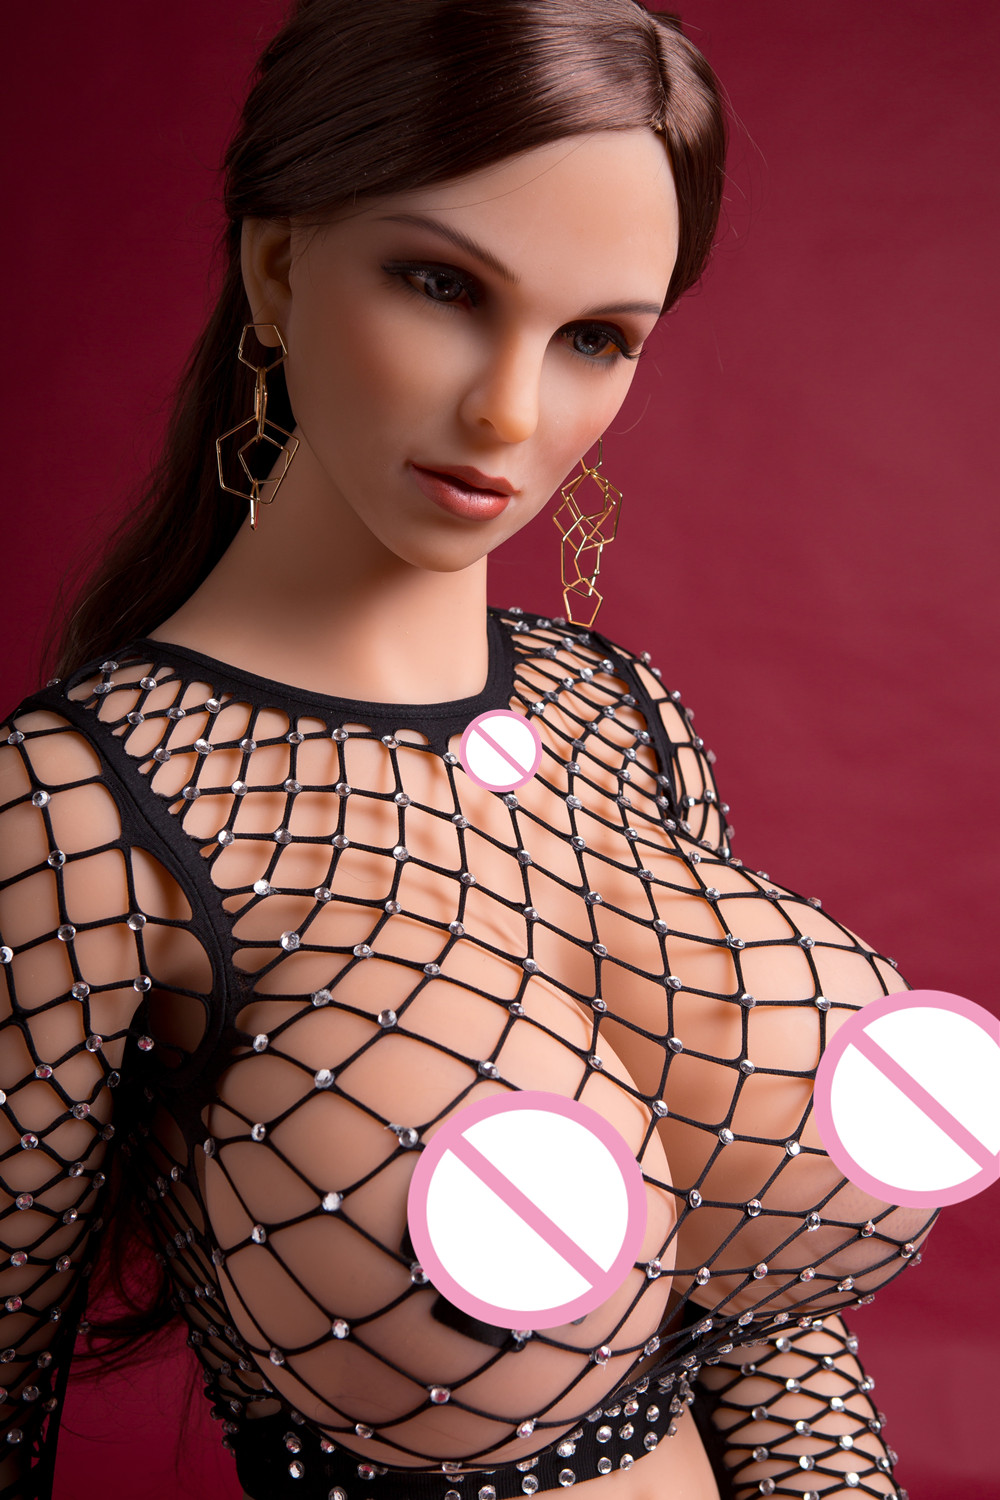 <font><b>165cm</b></font> adult <font><b>sex</b></font> <font><b>doll</b></font> for men image